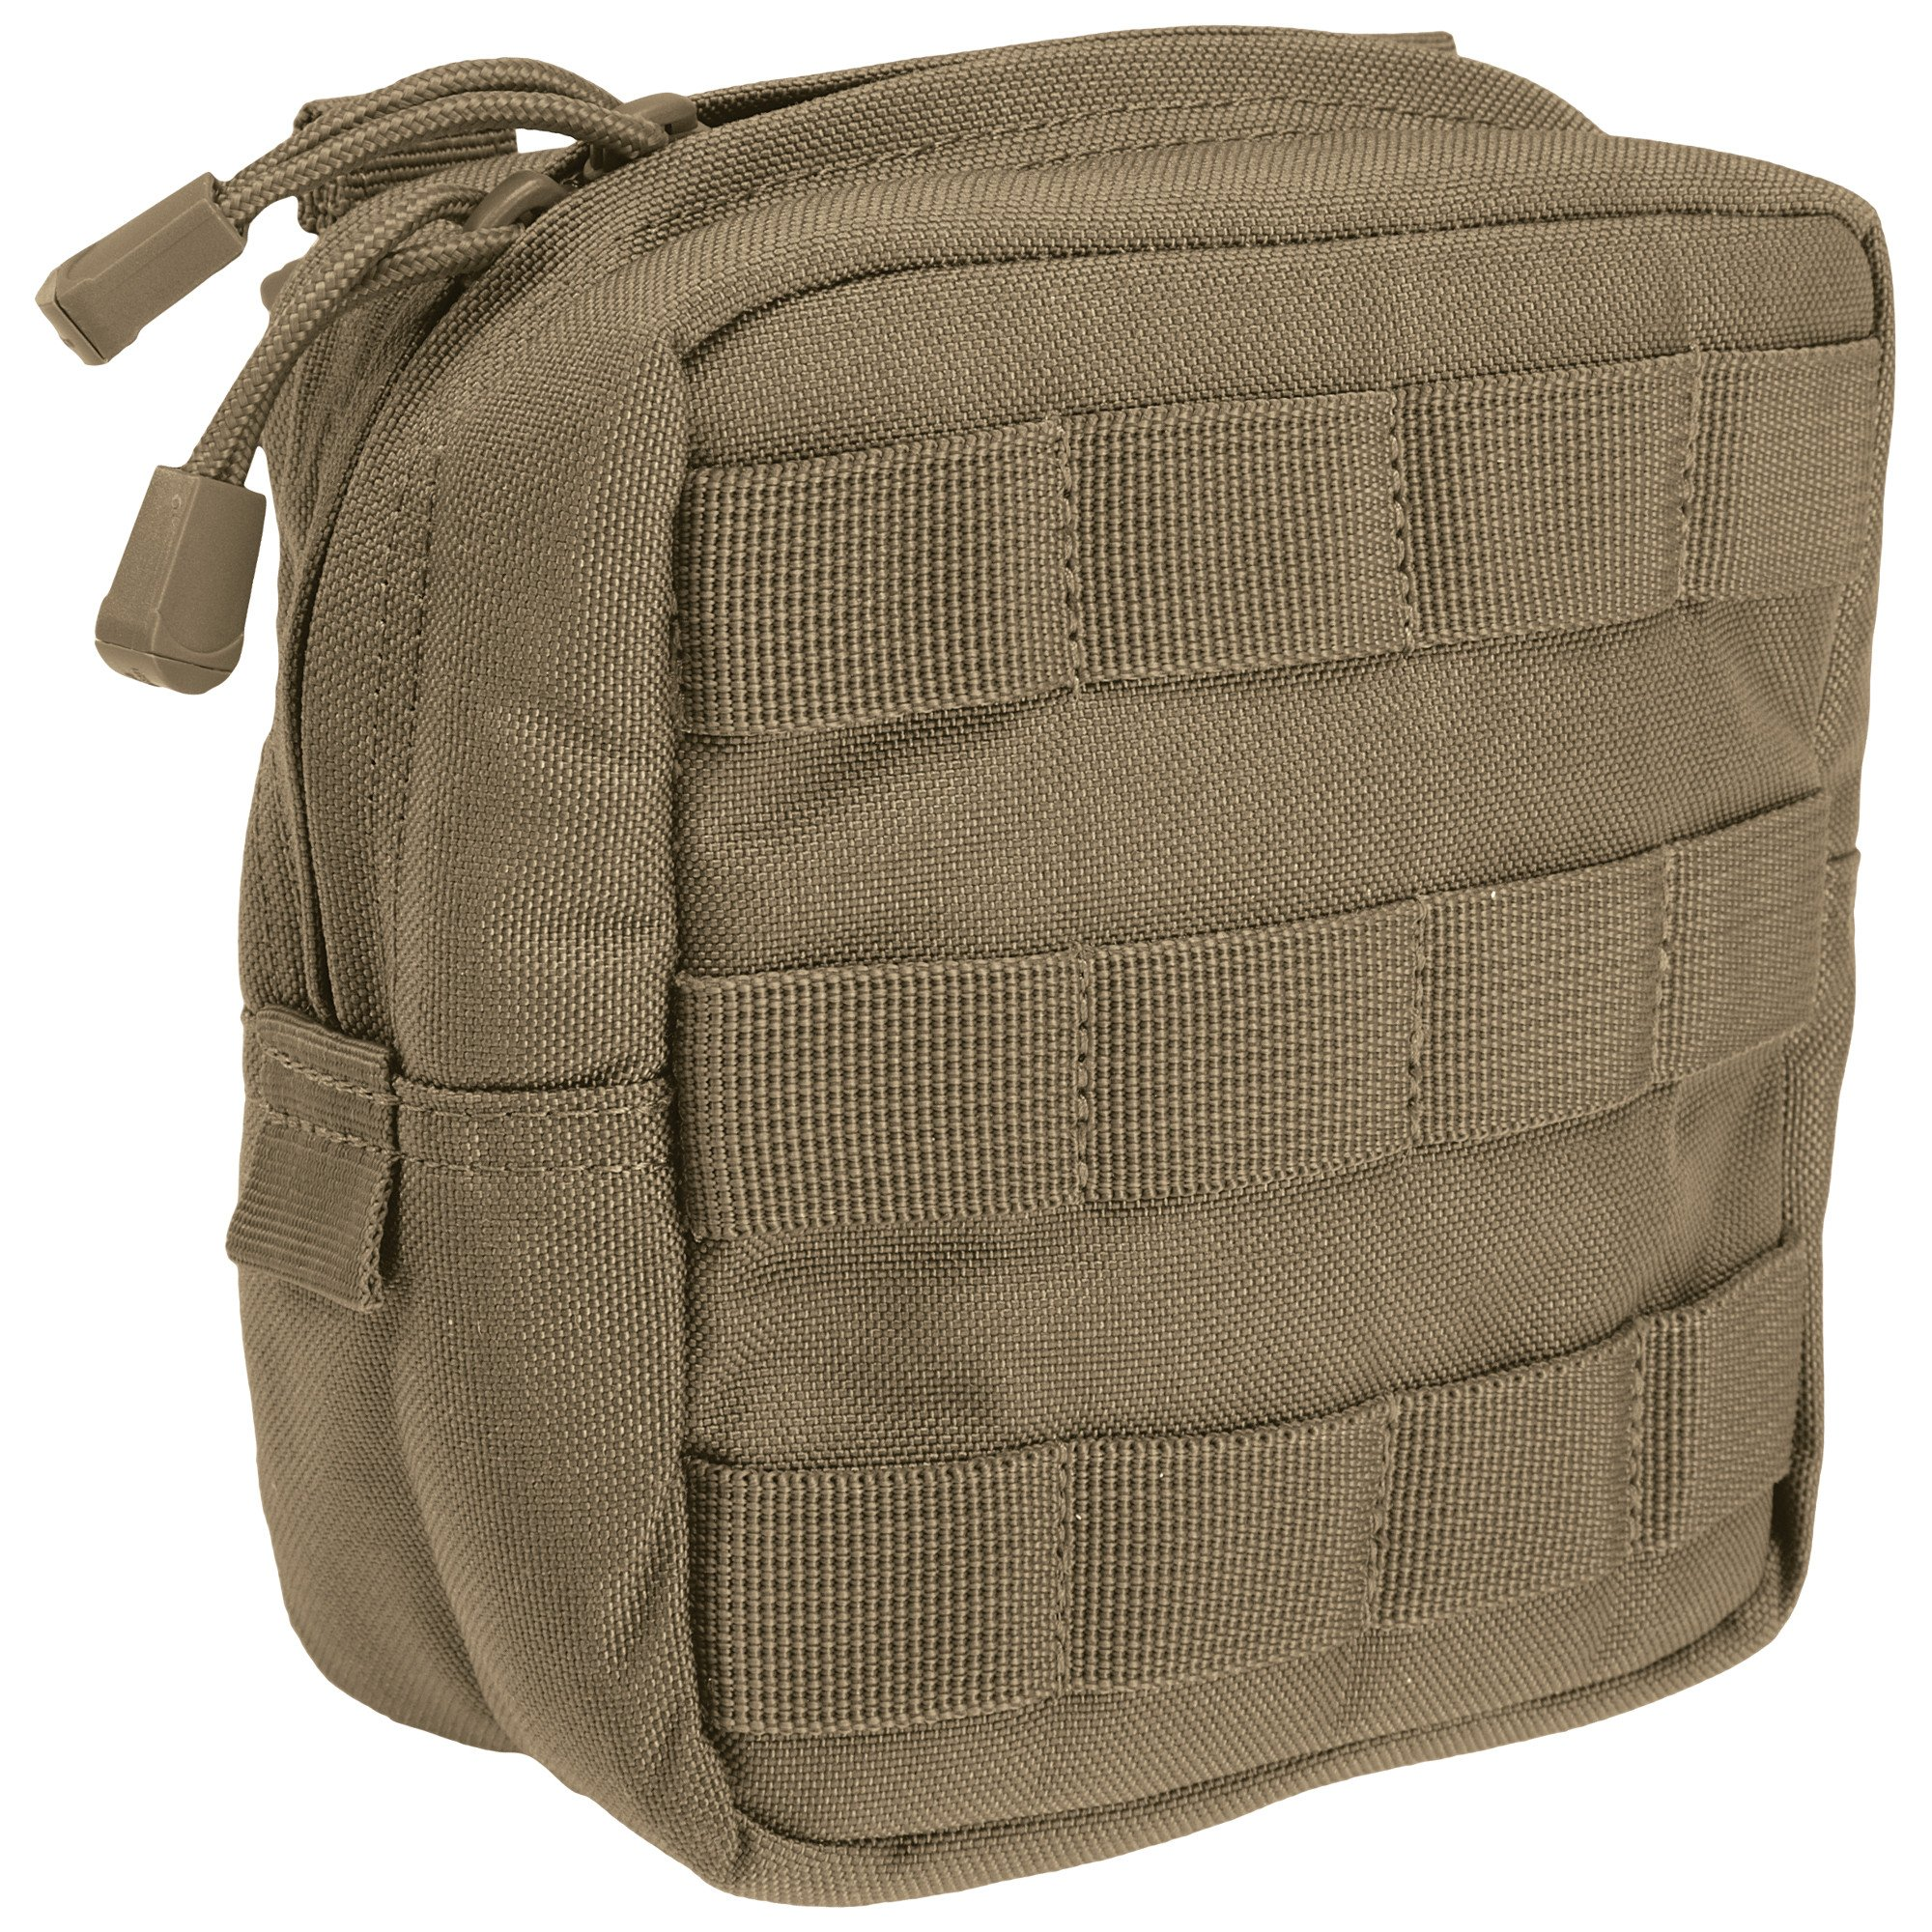 6 X 6 PADDED POUCH – Sandstone